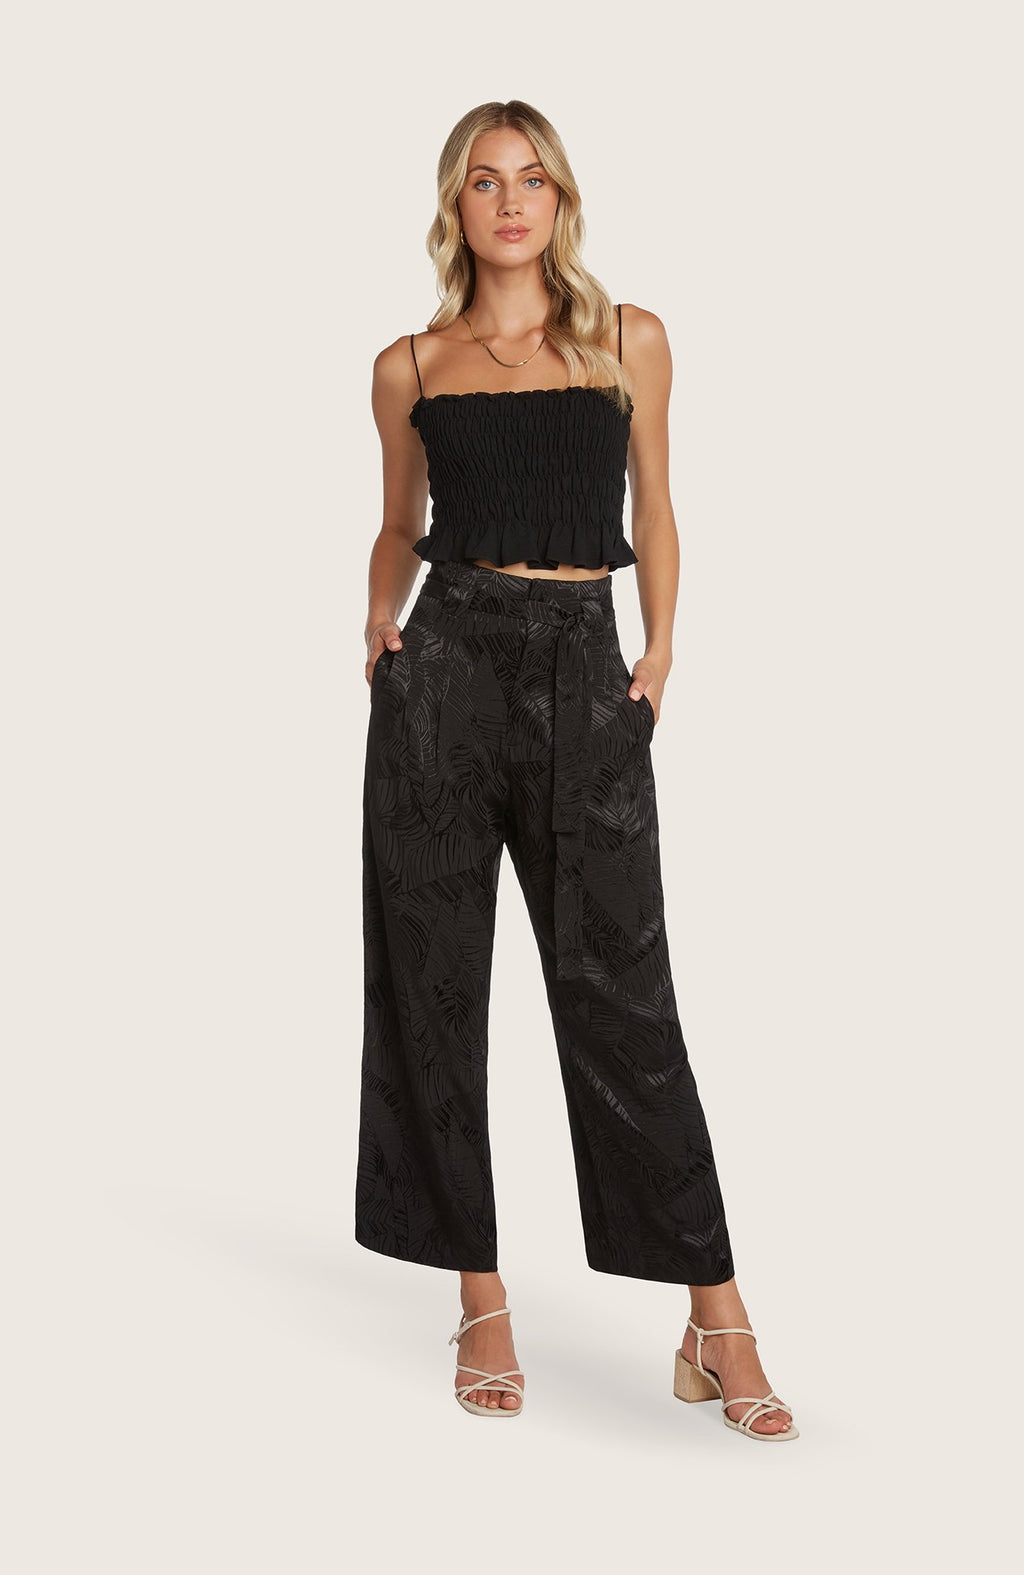 willow-chandler-pants-jacquard-print-silky-tie-belt-wideleg-cropped-highwaisted-black-leaf-print-party-goingout-matching-top